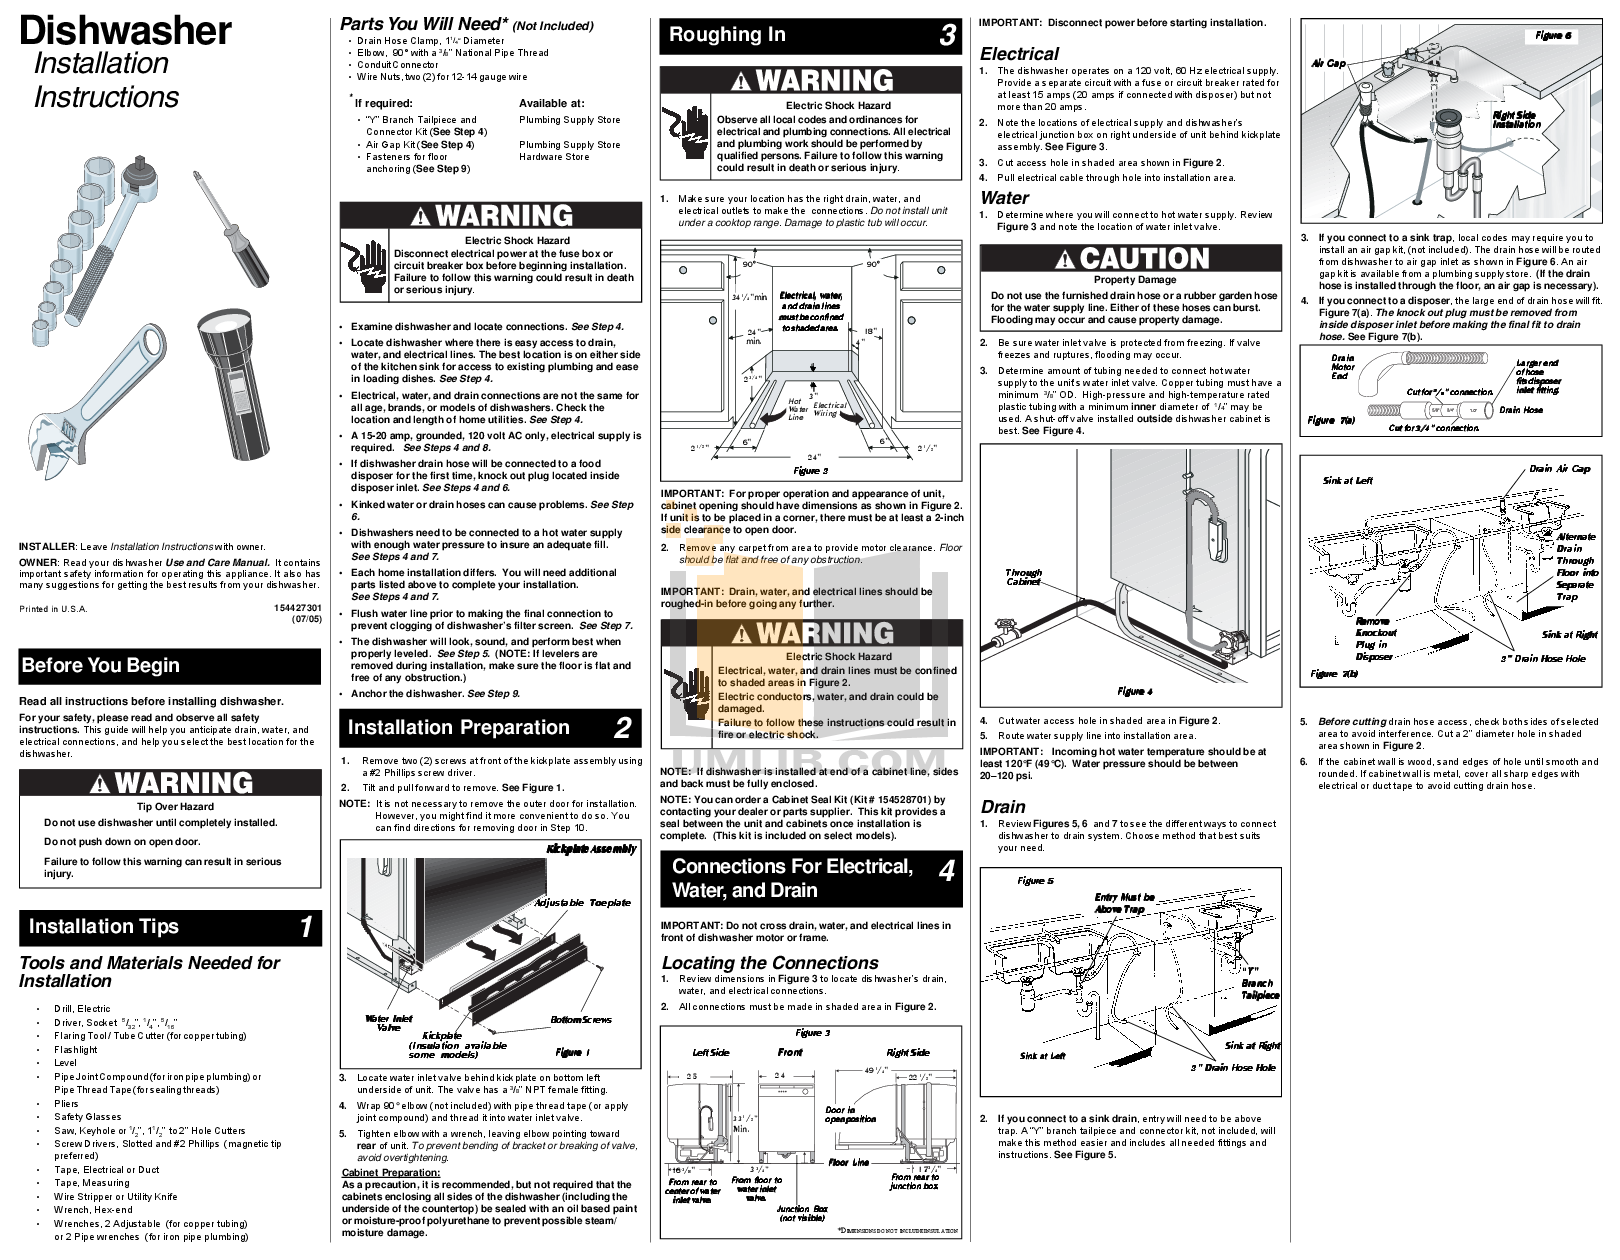 wiring diagram for sanyo dishwasher wiring librarydishwasher schematics pdf wiring diagrams